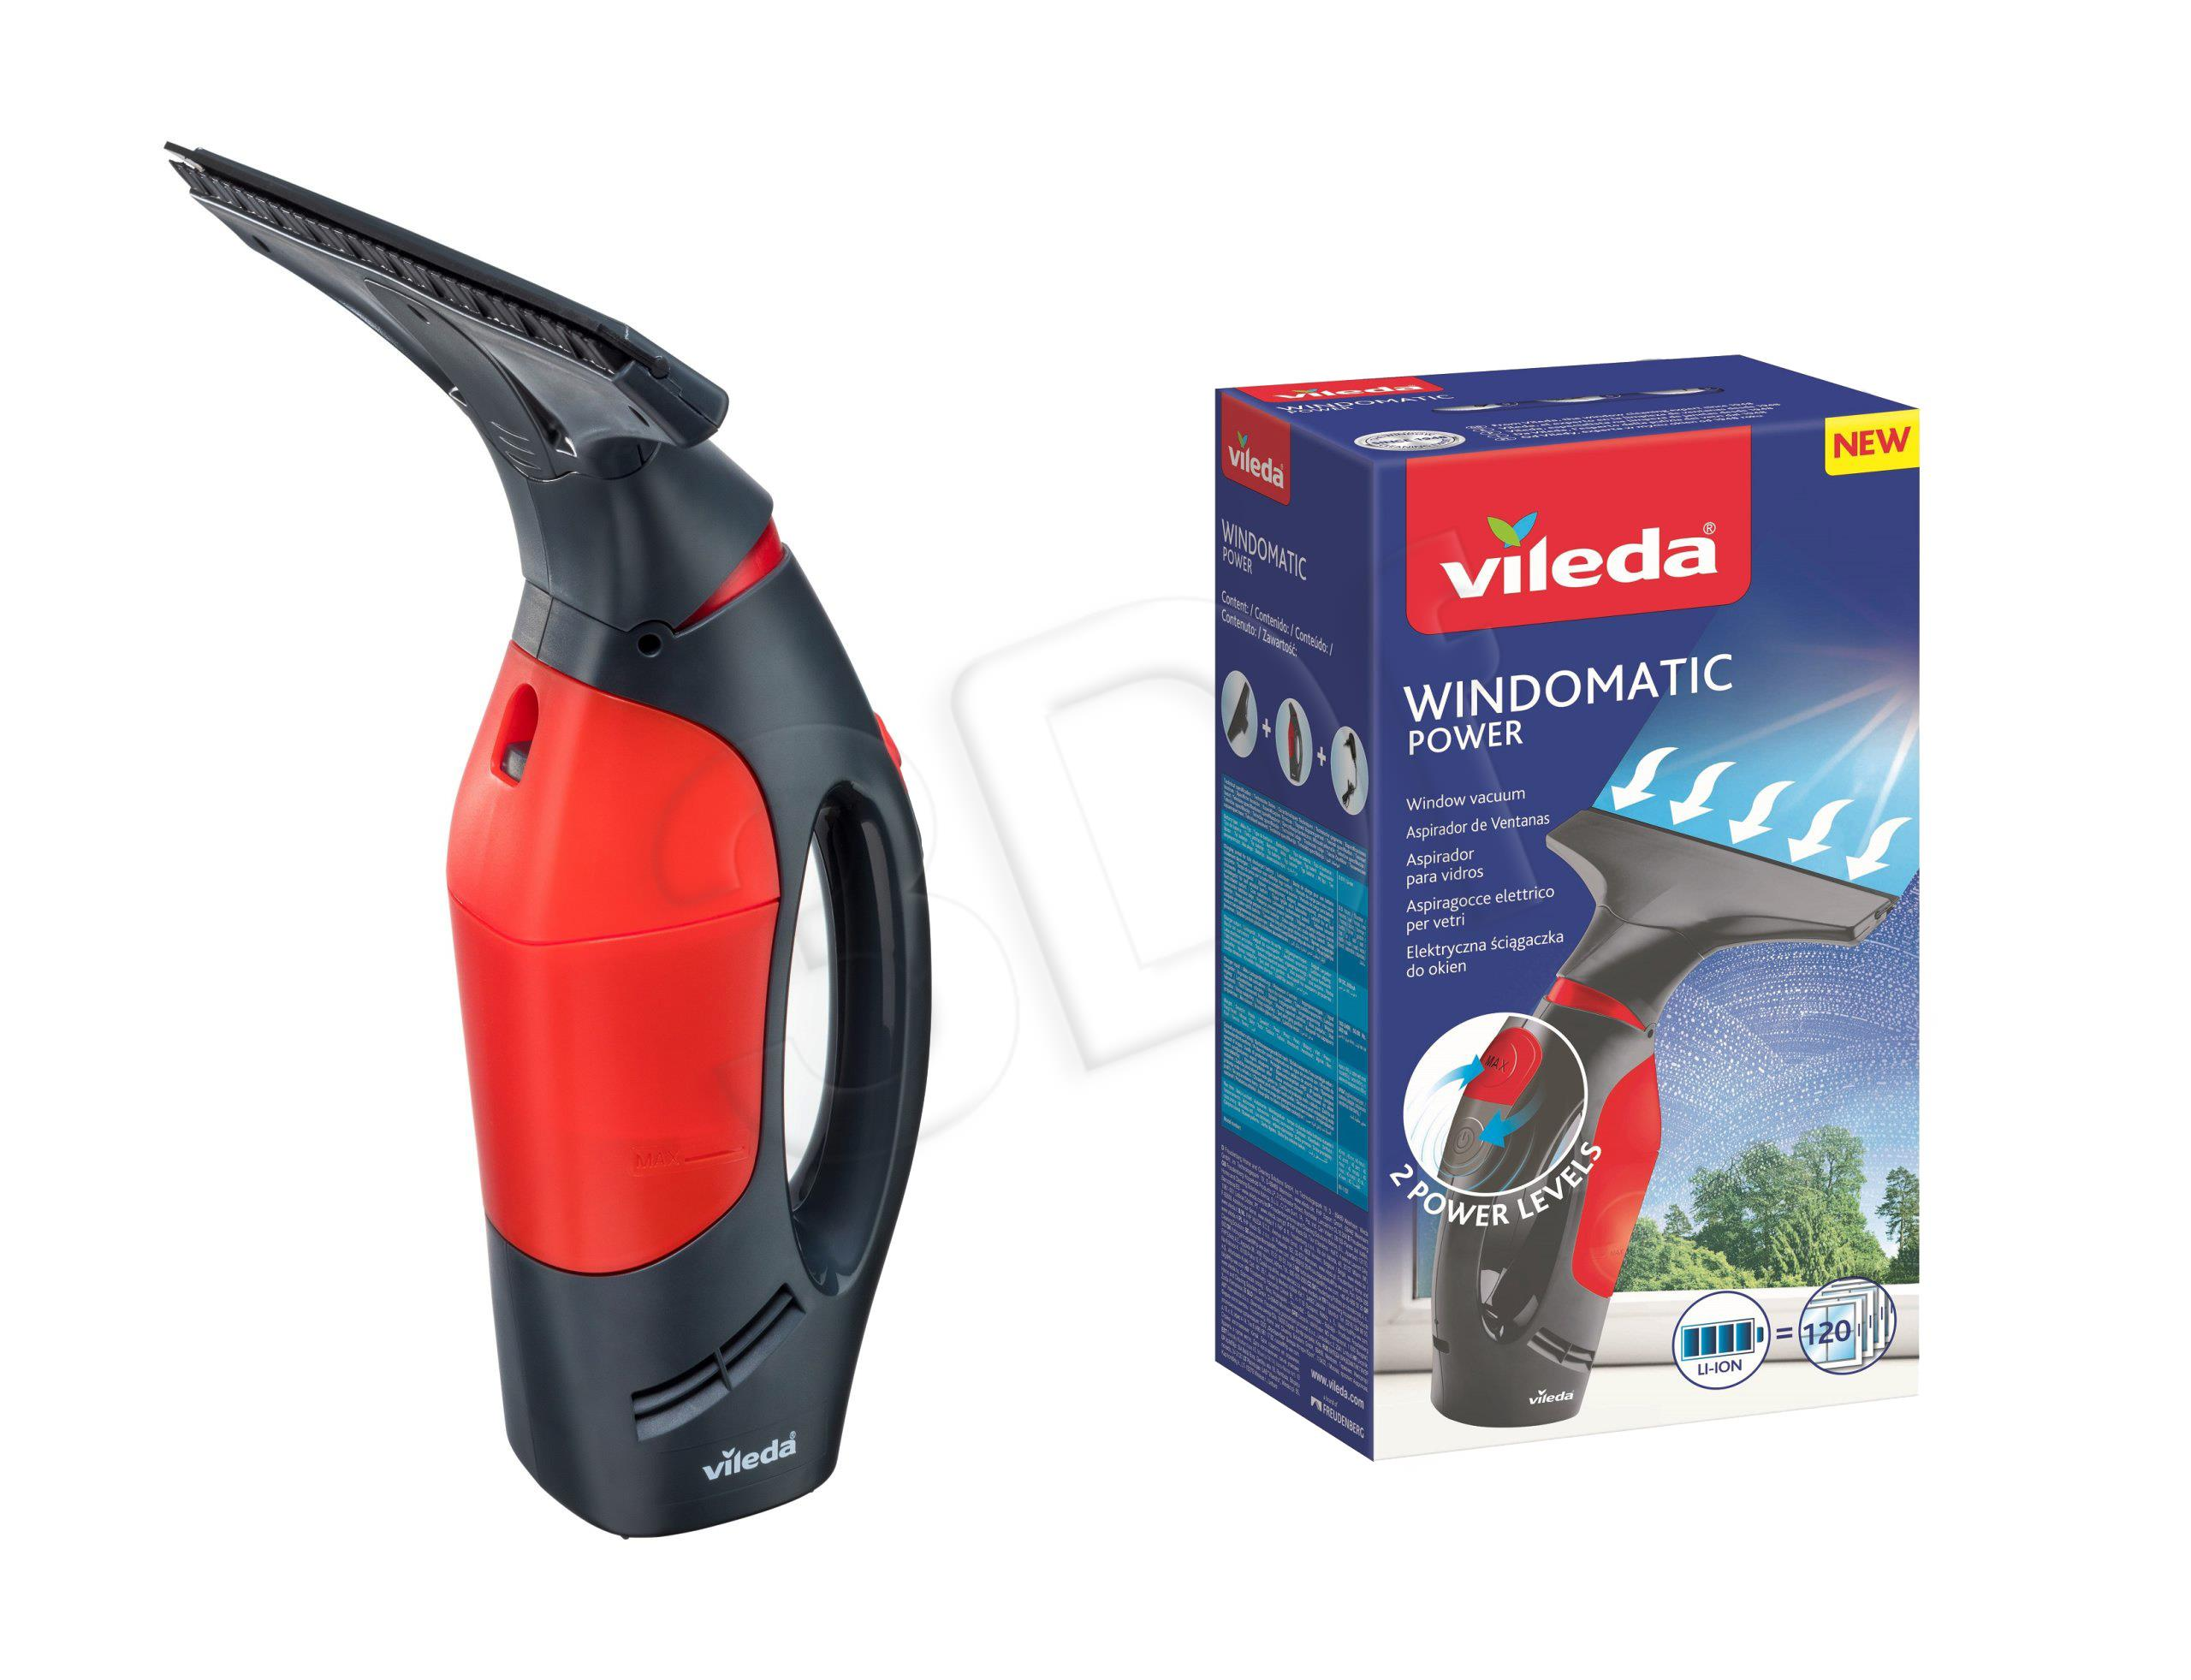 Windomatic Power washer for windows 153230 tīrīšanas līdzeklis